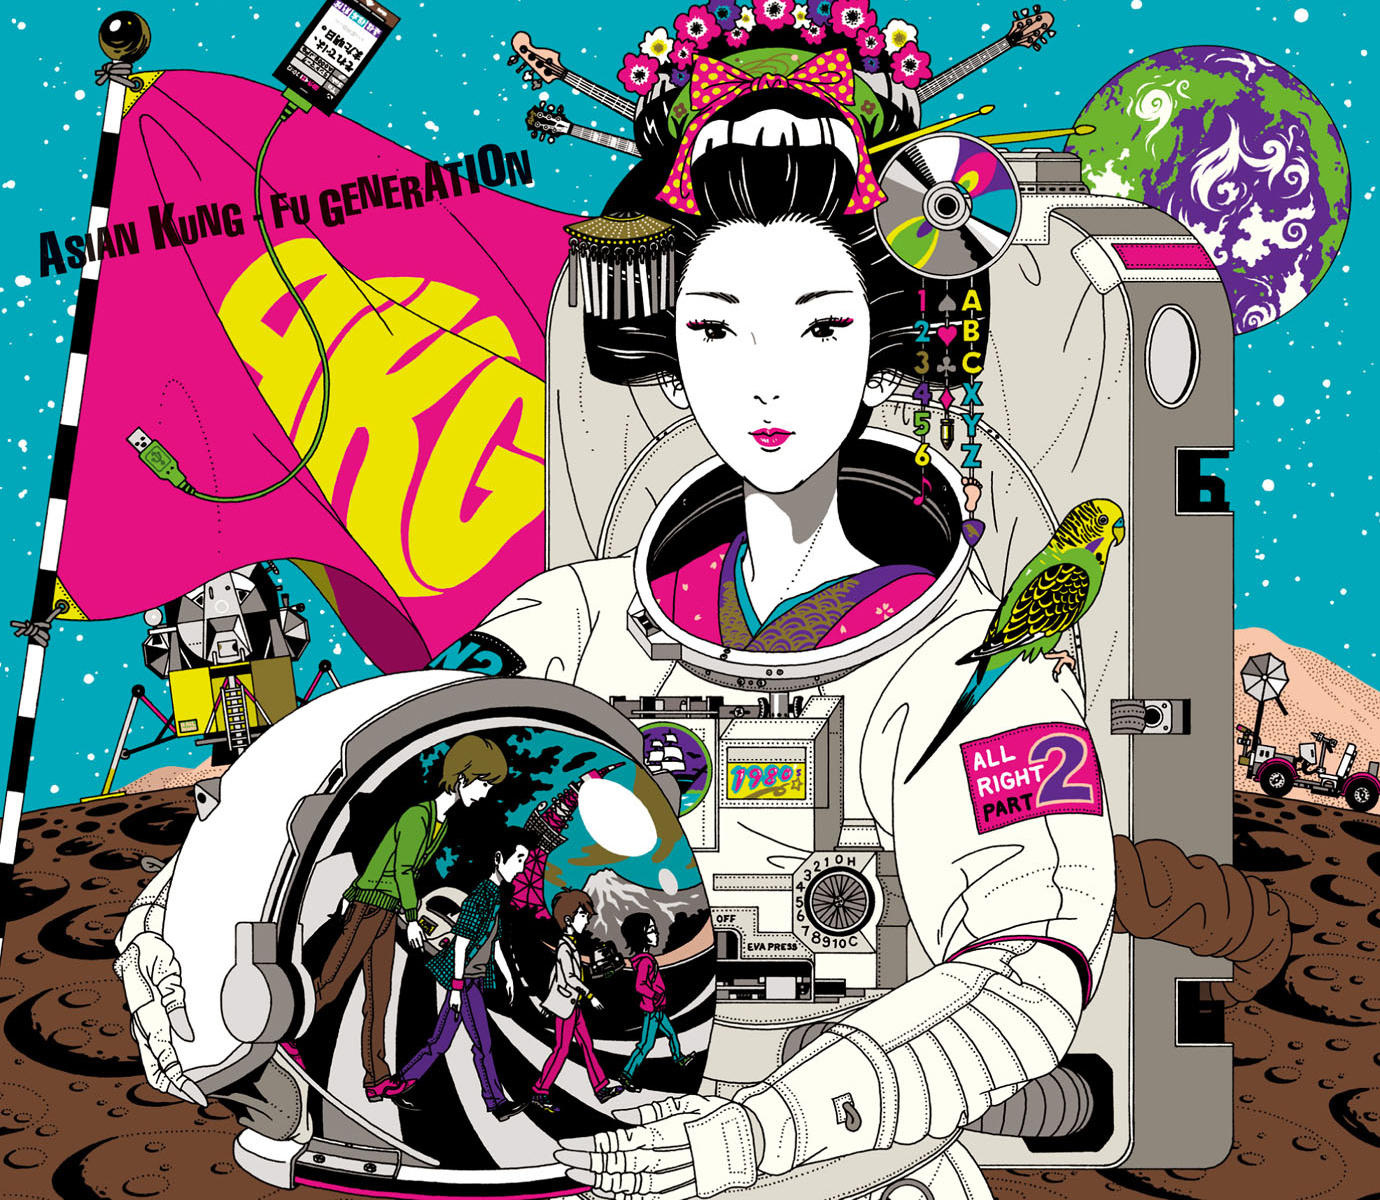 Asian Kung Fu Generation Cover Art 86